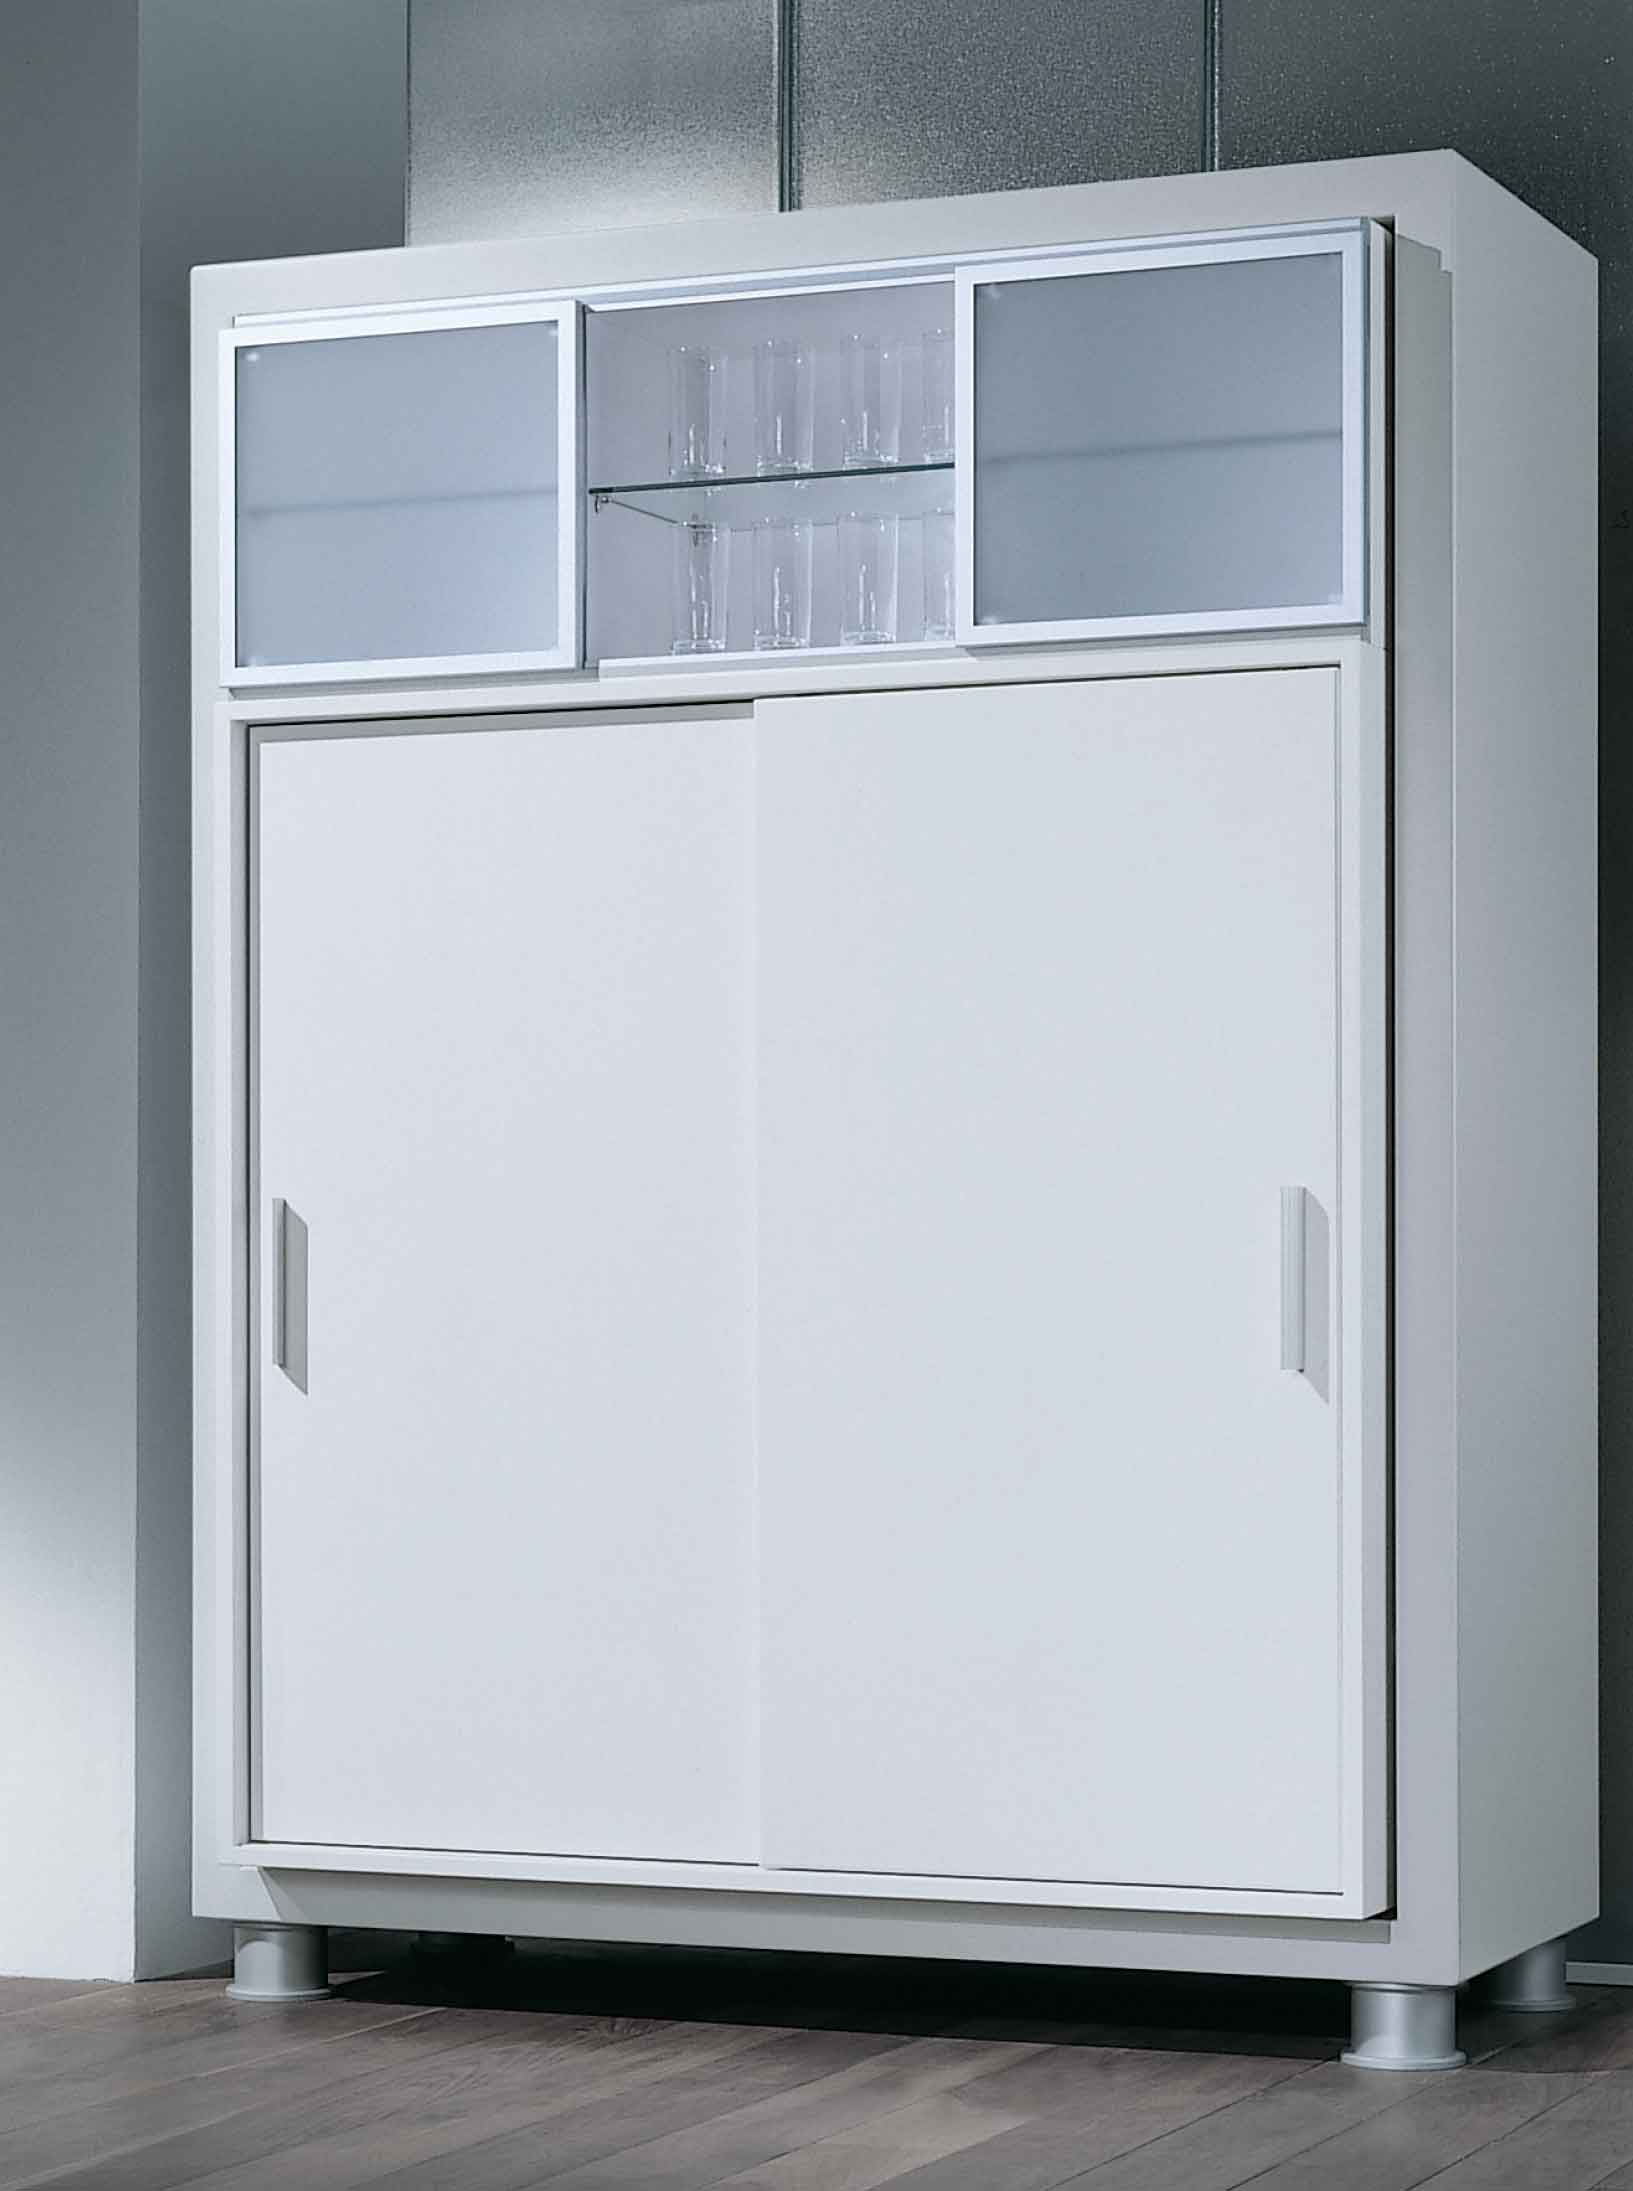 For Inset doors